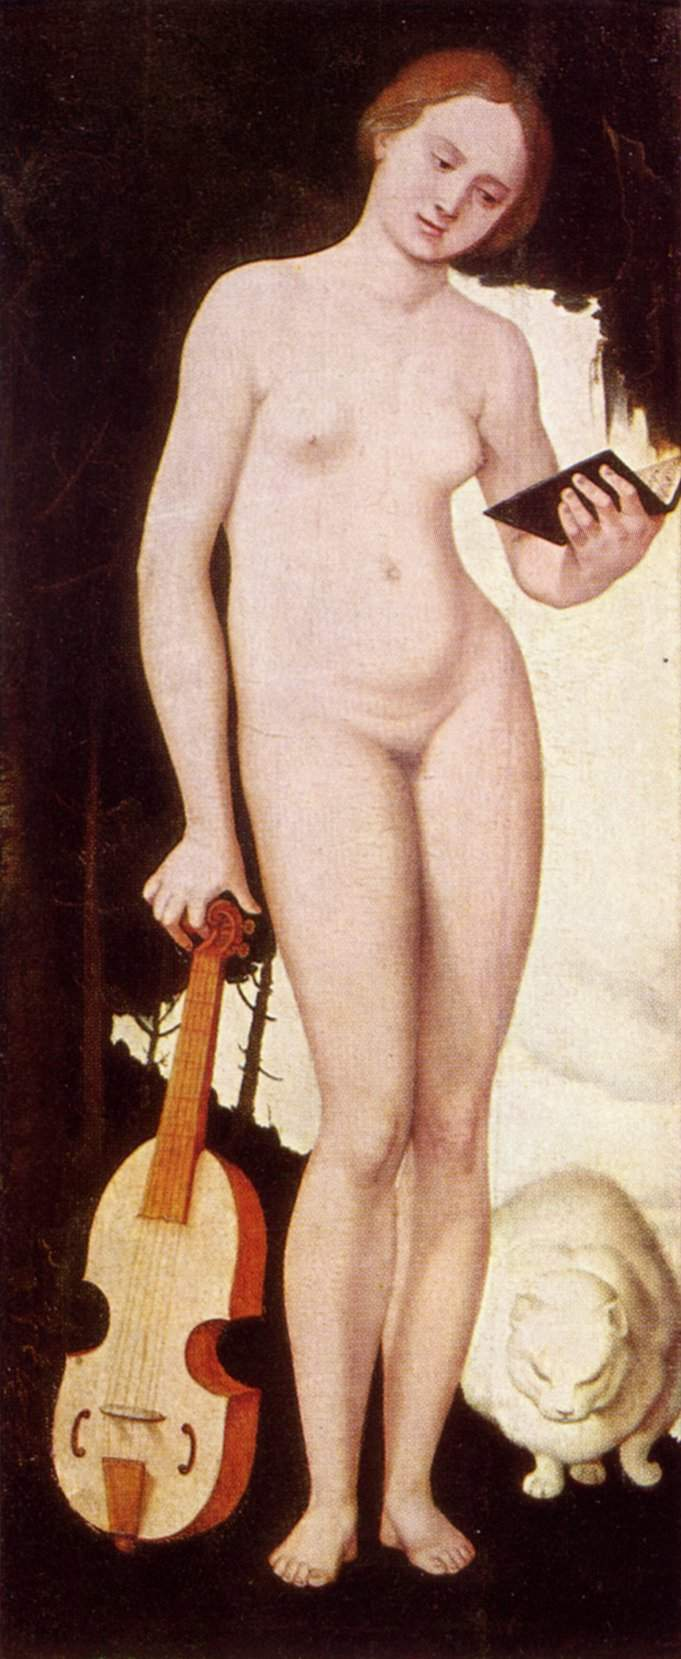 http://uploads2.wikipaintings.org/images/hans-baldung/woman-with-cat-allegory-of-musik-1529.jpg